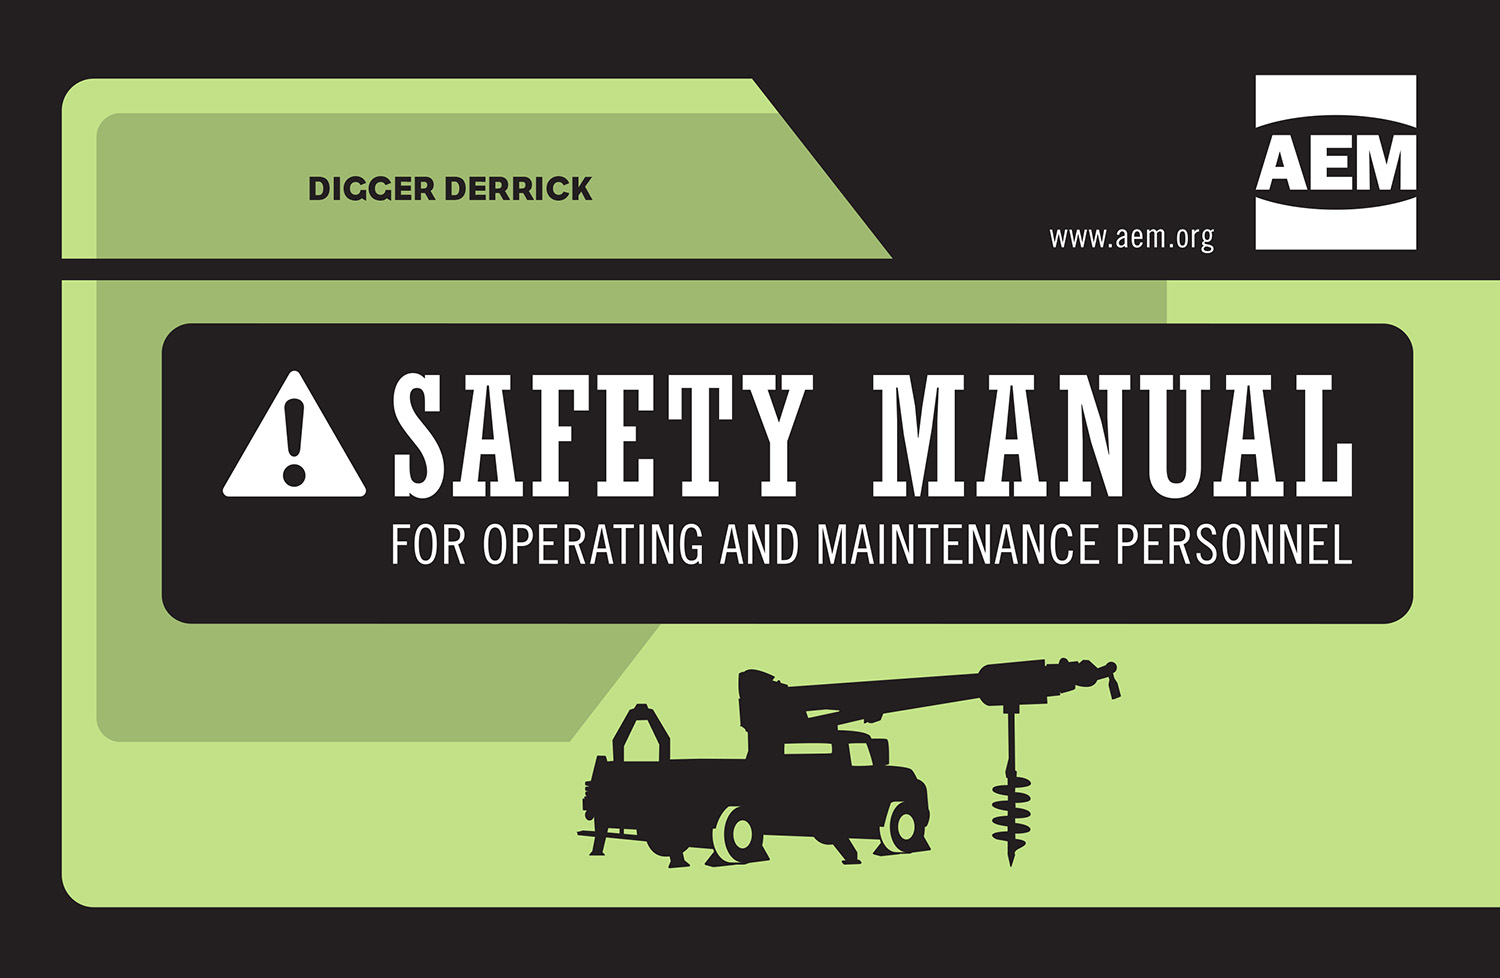 The Association Of Equipment Manufacturers (AEM) Has Released An Updated  Version Of Its Digger Derrick Safety Manual With New Content.